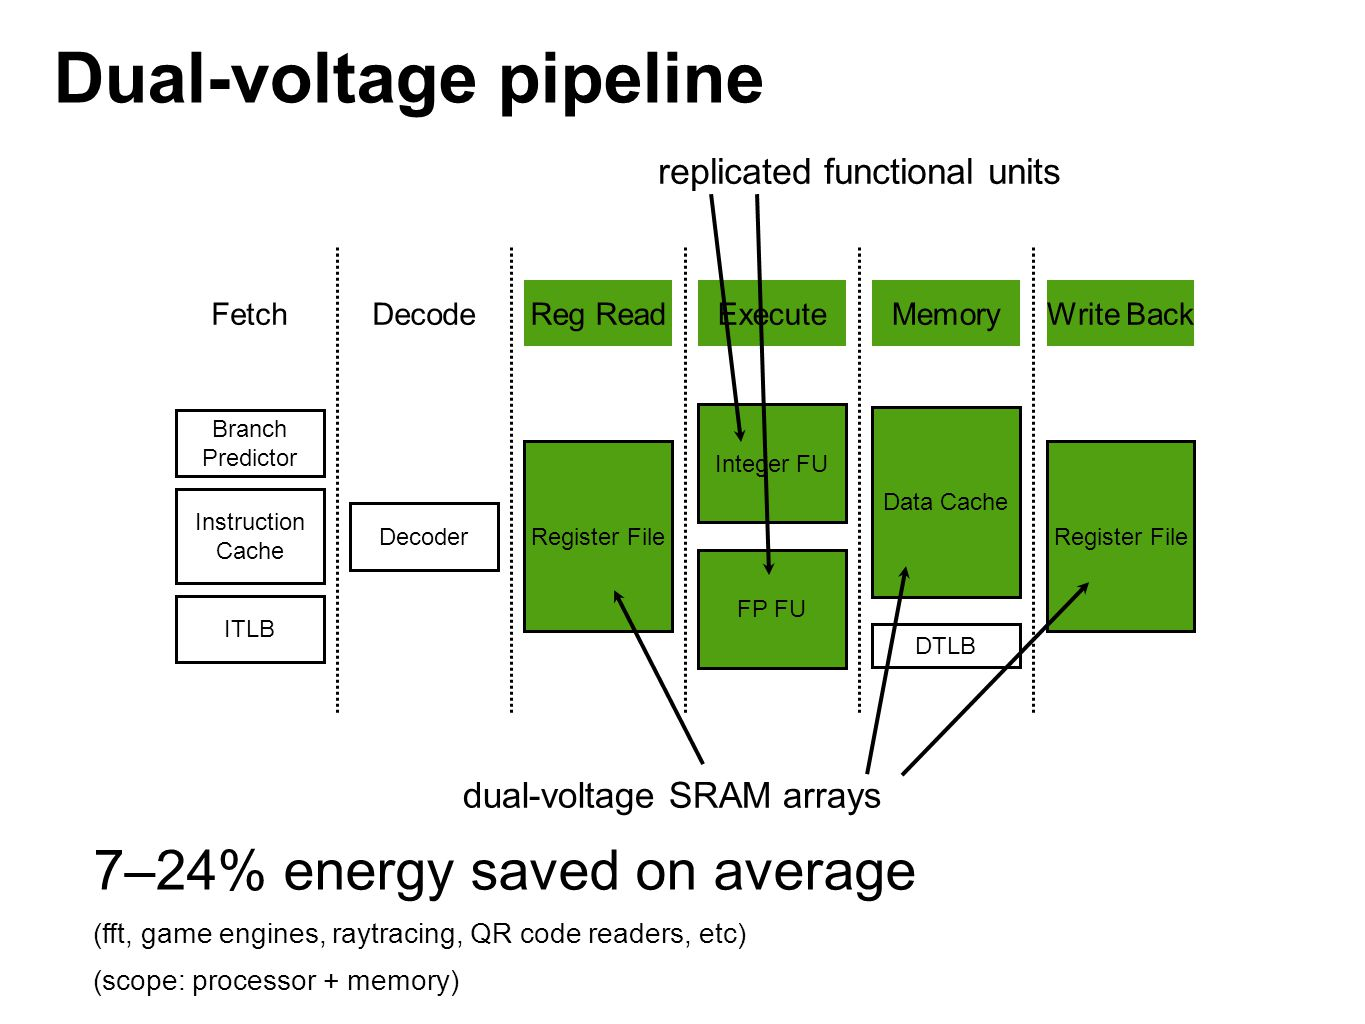 Dual-voltage pipeline FetchDecodeReg ReadExecuteMemoryWrite Back Branch Predictor Instruction Cache ITLB Decoder Register File Integer FU FP FU Data Cache DTLB Register File replicated functional units dual-voltage SRAM arrays 7–24% energy saved on average (fft, game engines, raytracing, QR code readers, etc) (scope: processor + memory)